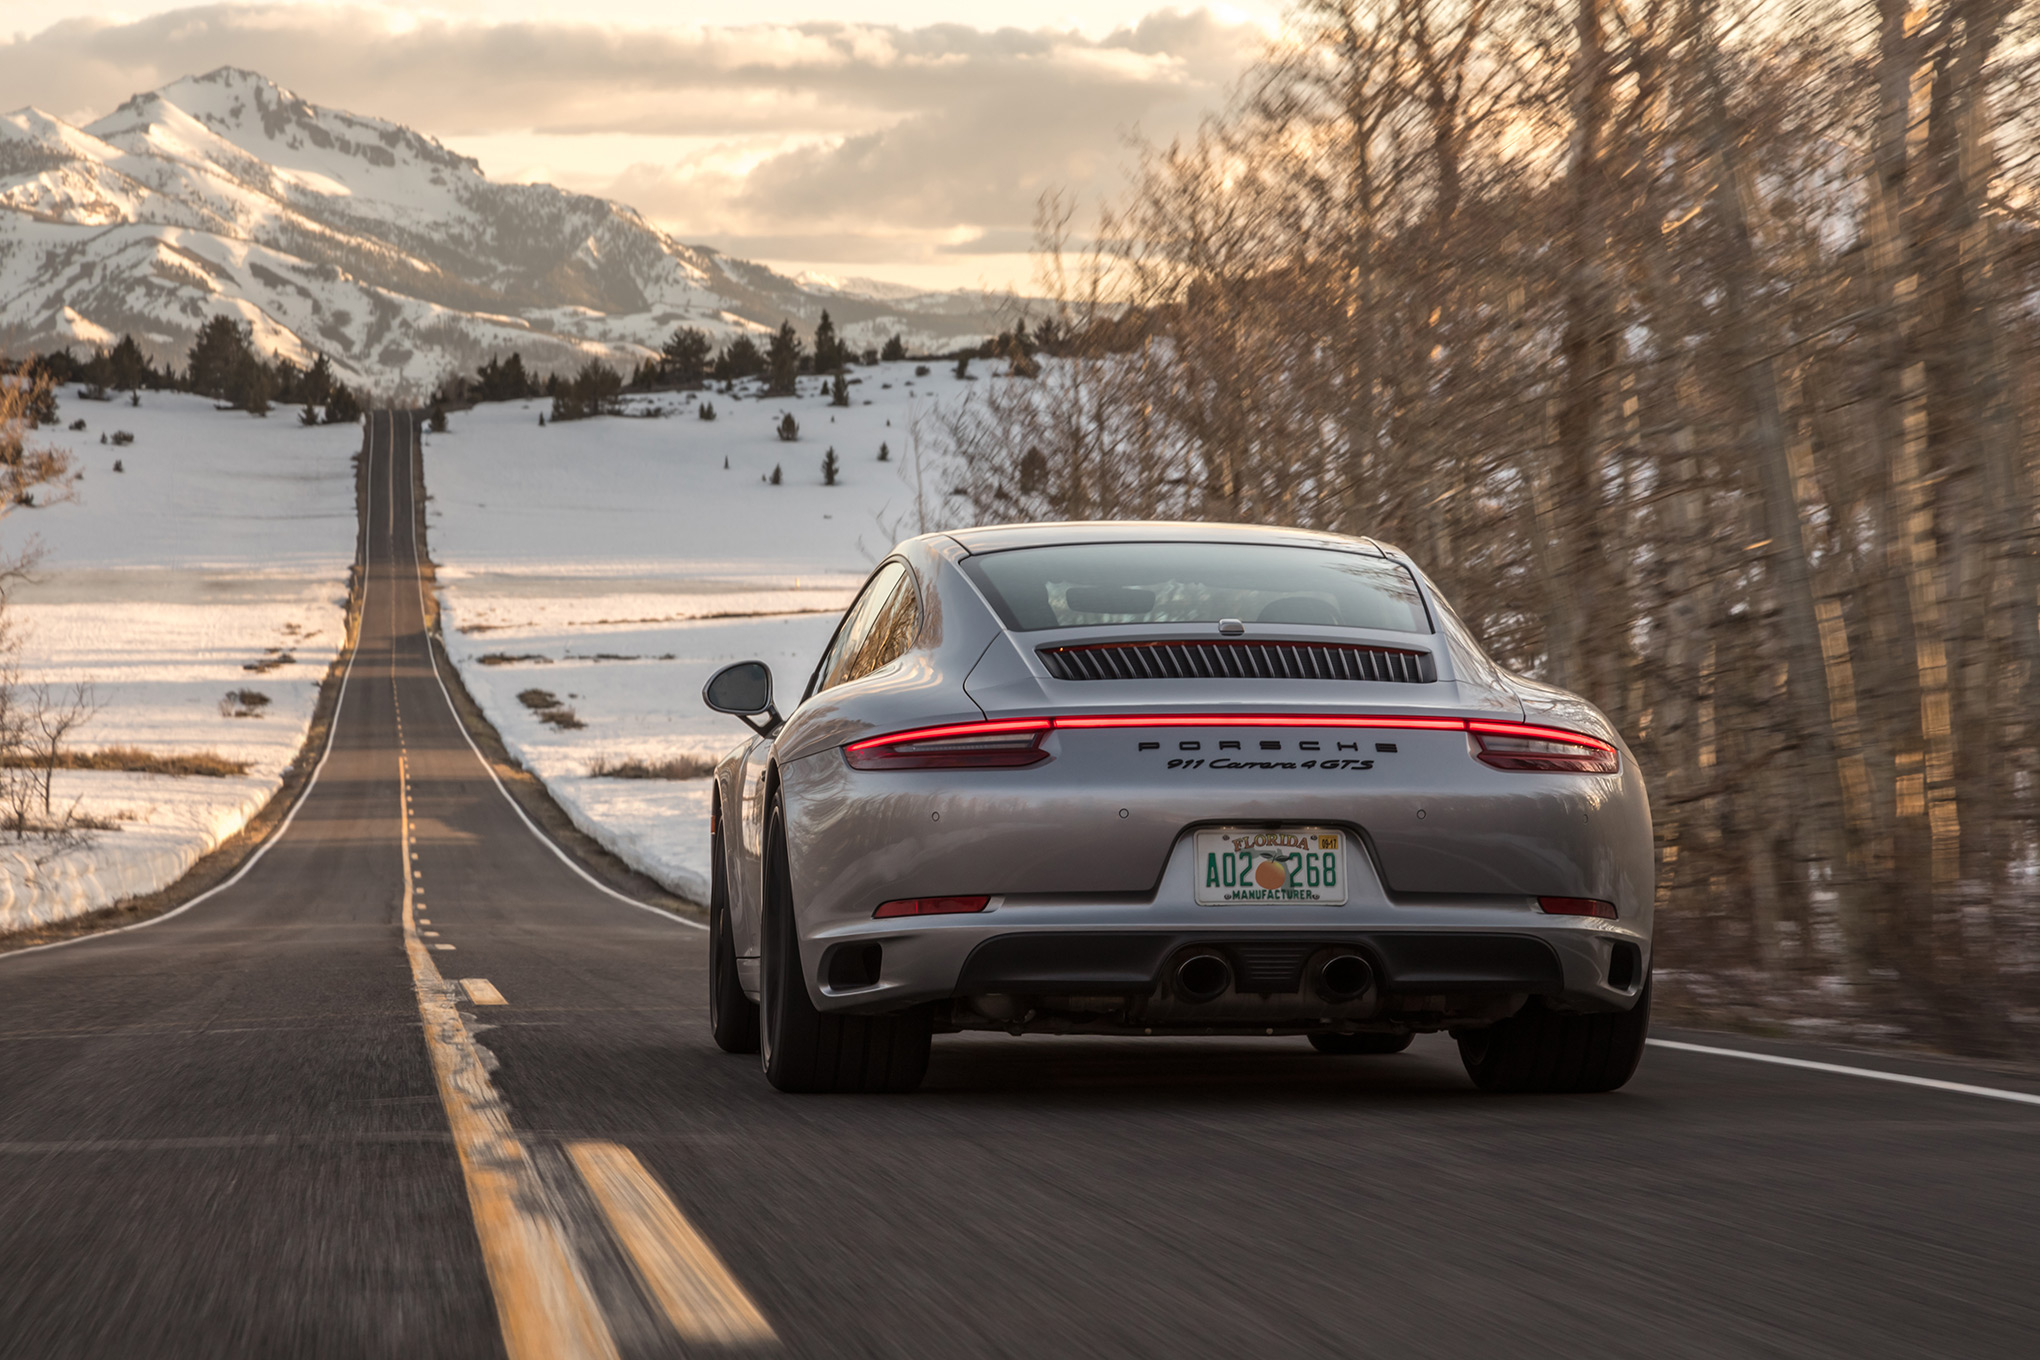 All Gts Cabriolet And Targa Models Get Standard Porsche Active Suspension Management Pasm But Coupes Both Rear Drive Wheel Go A Step